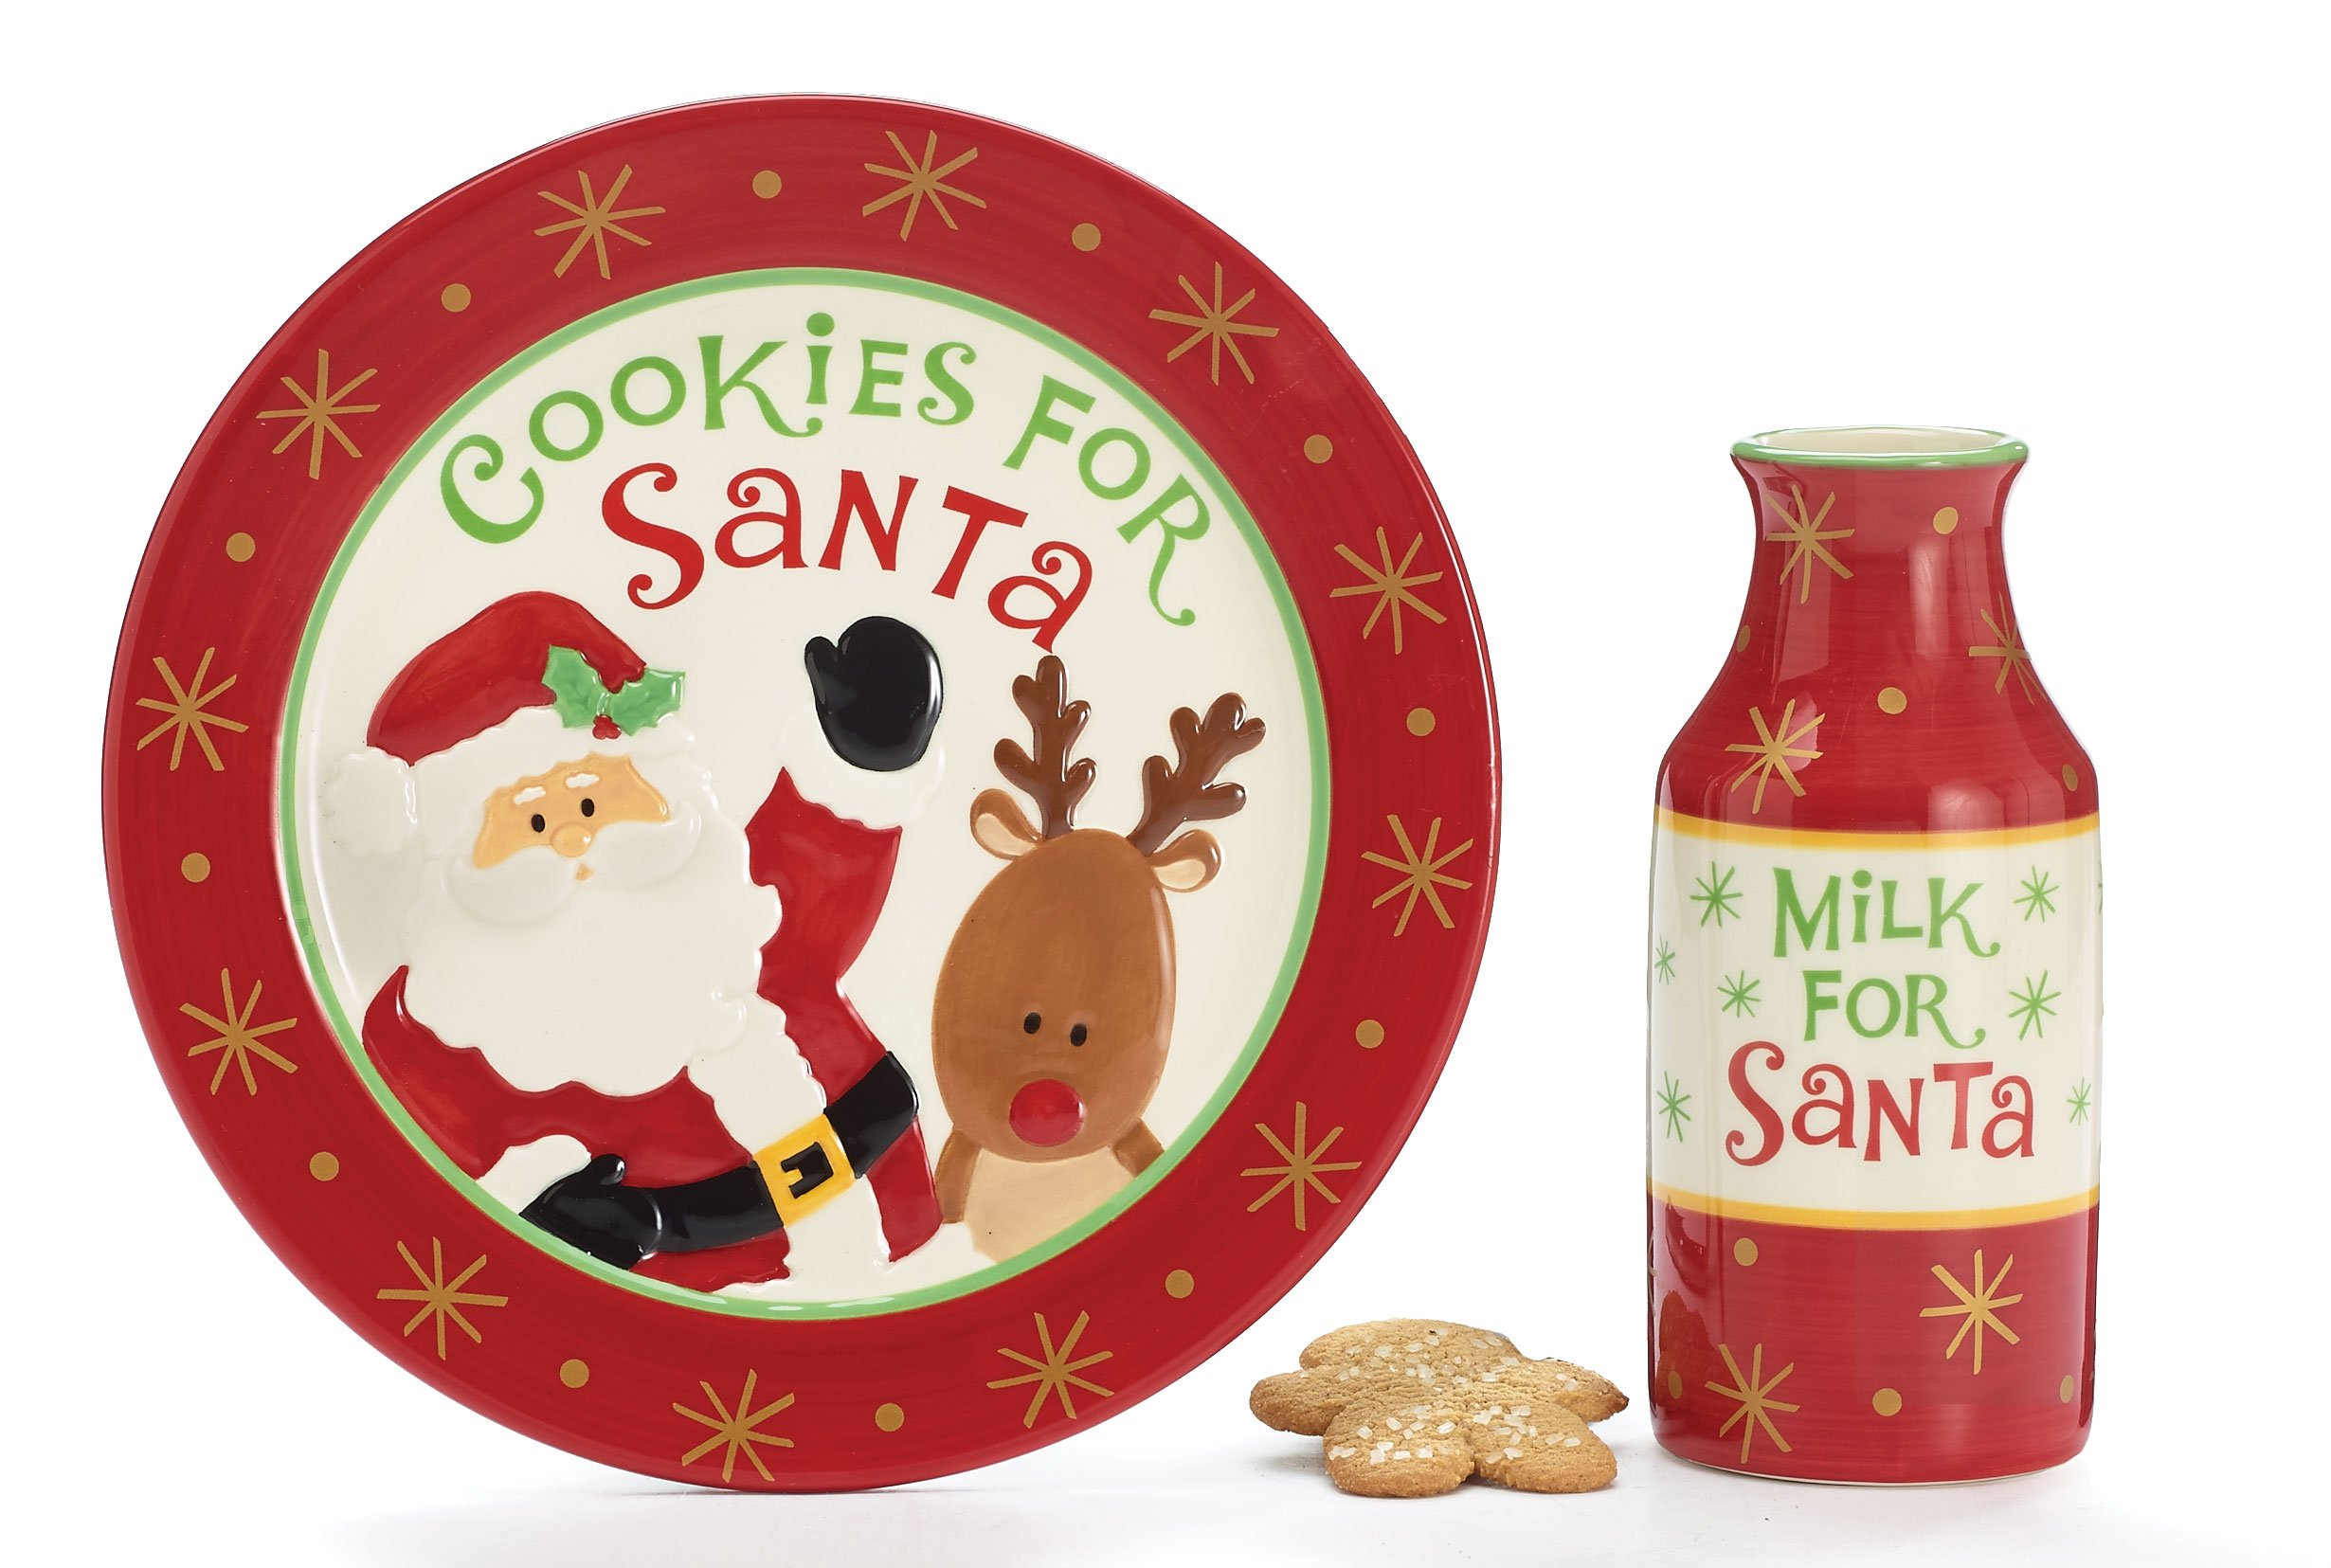 Burton & Burton Cookies For Santa Christmas Gift Set With Plate & Milk Bottle, Red